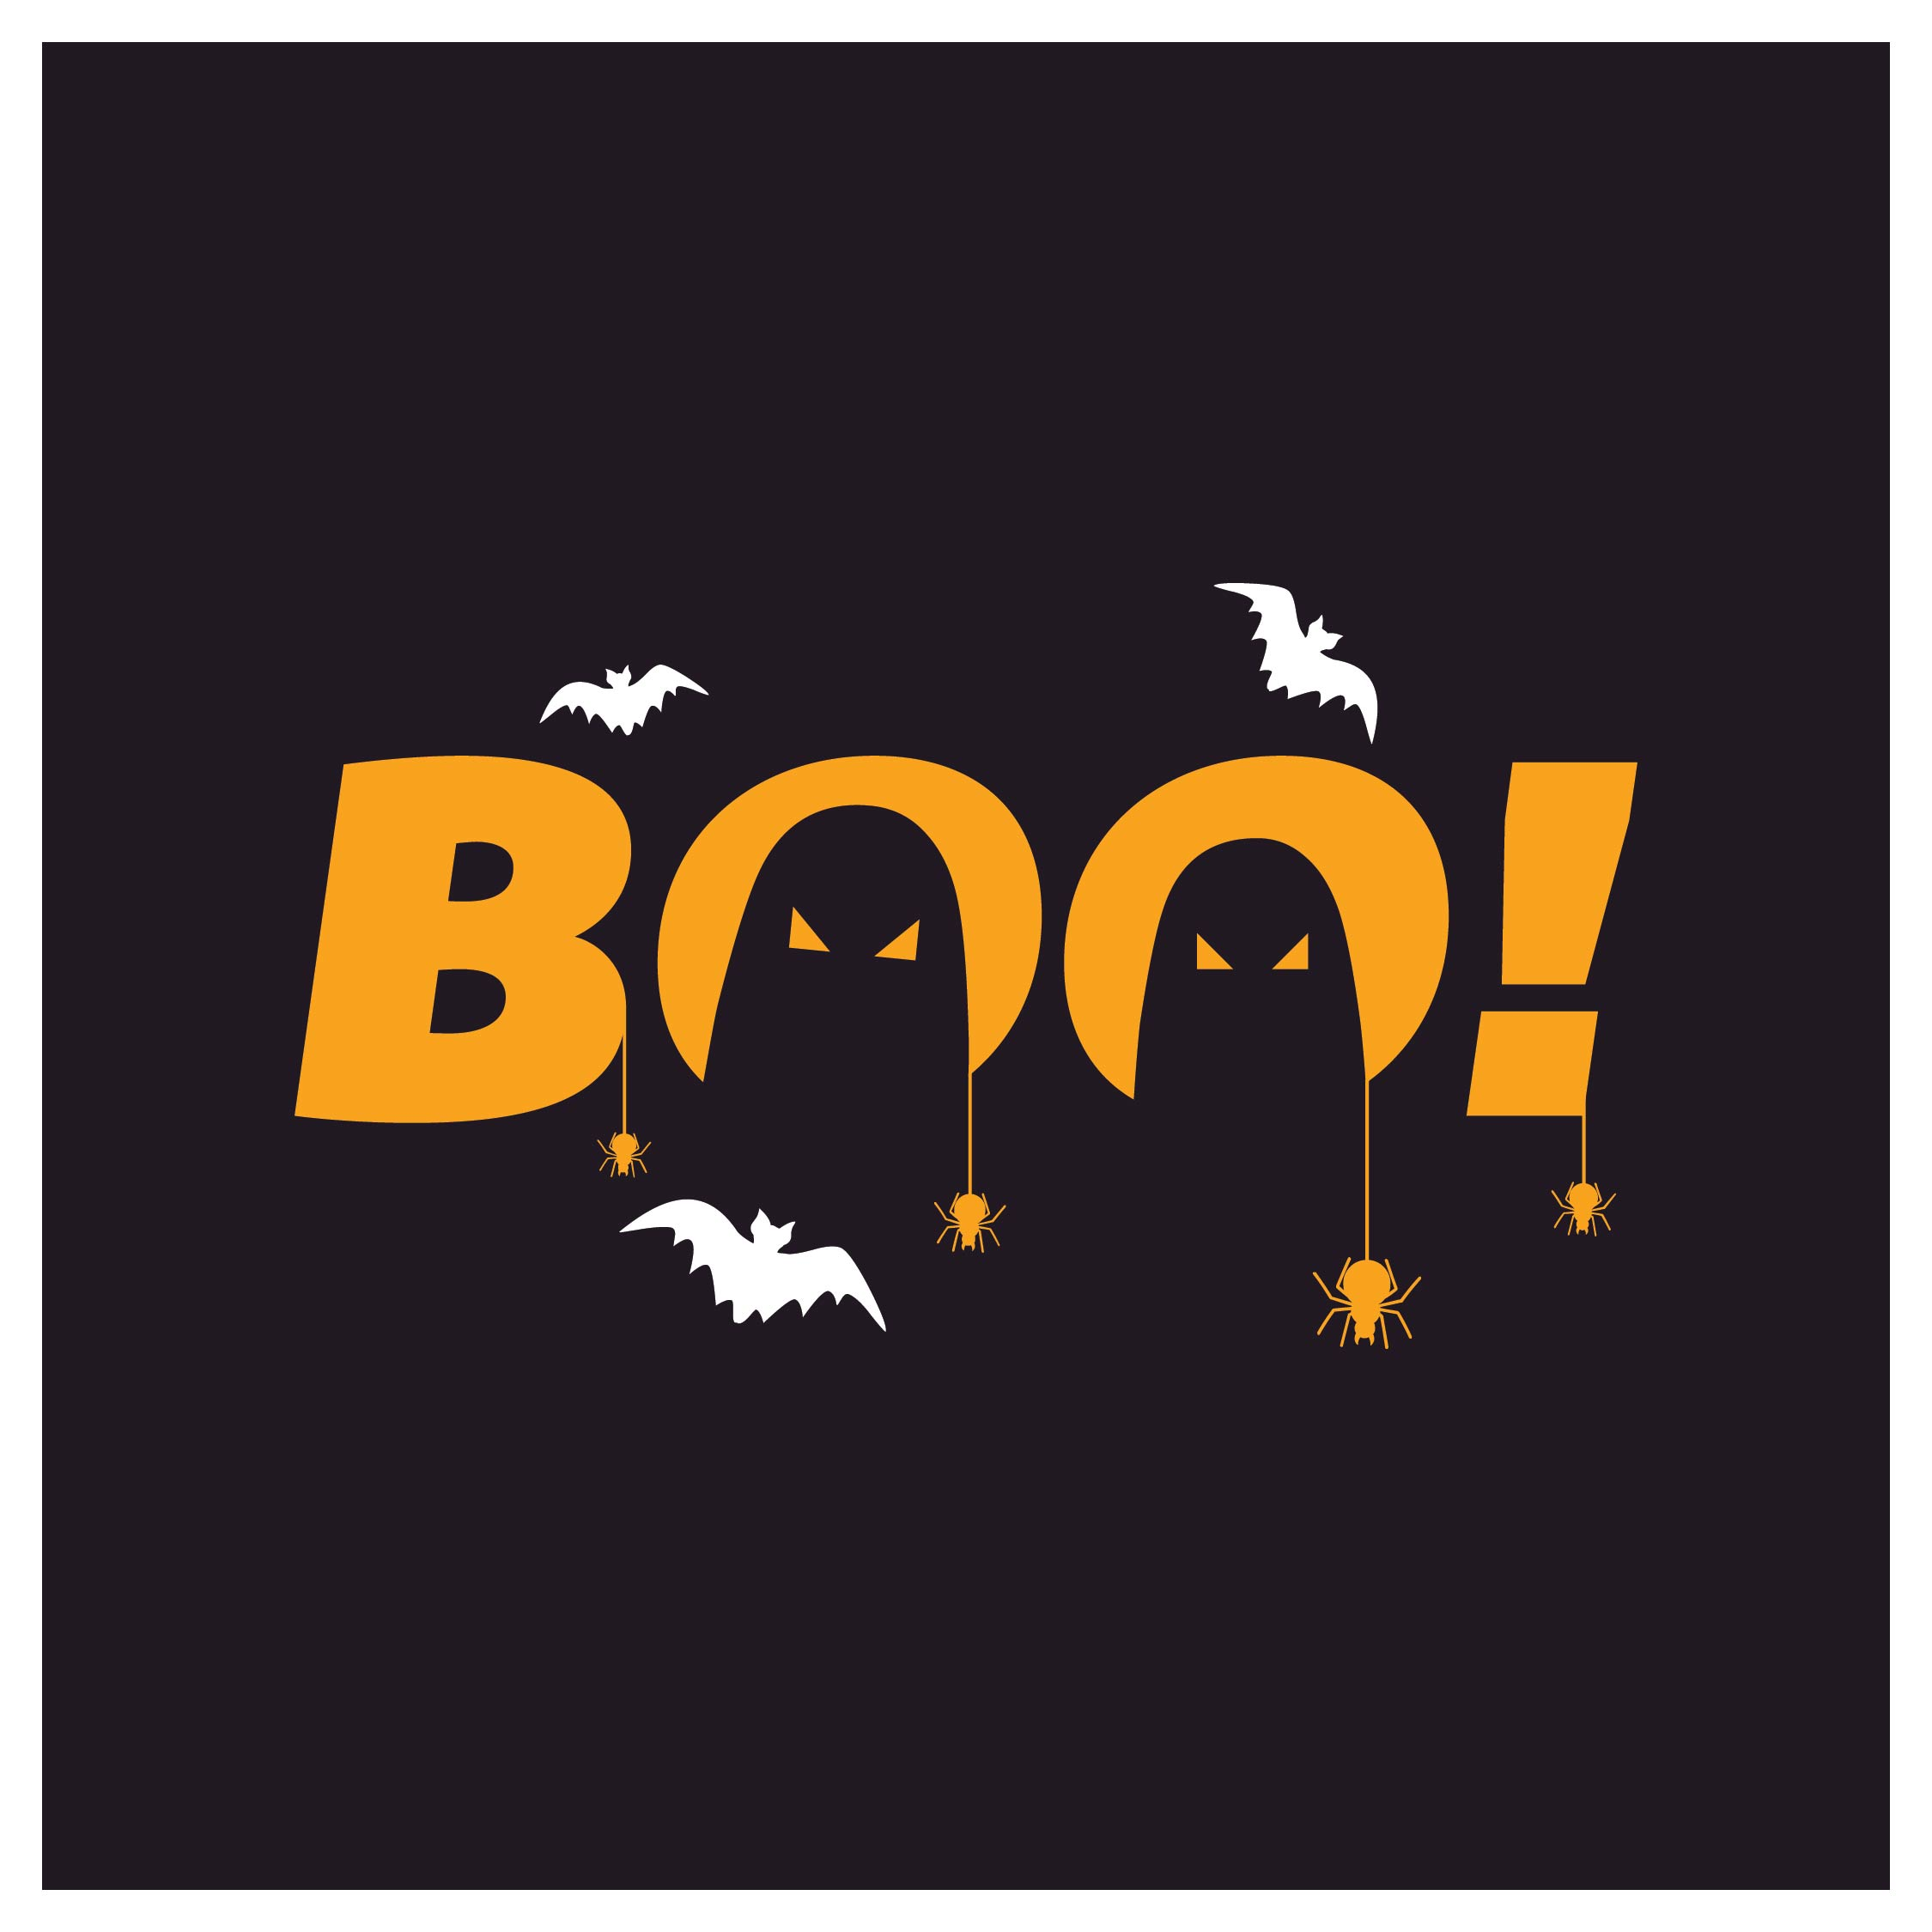 Printable Halloween Boo Sign